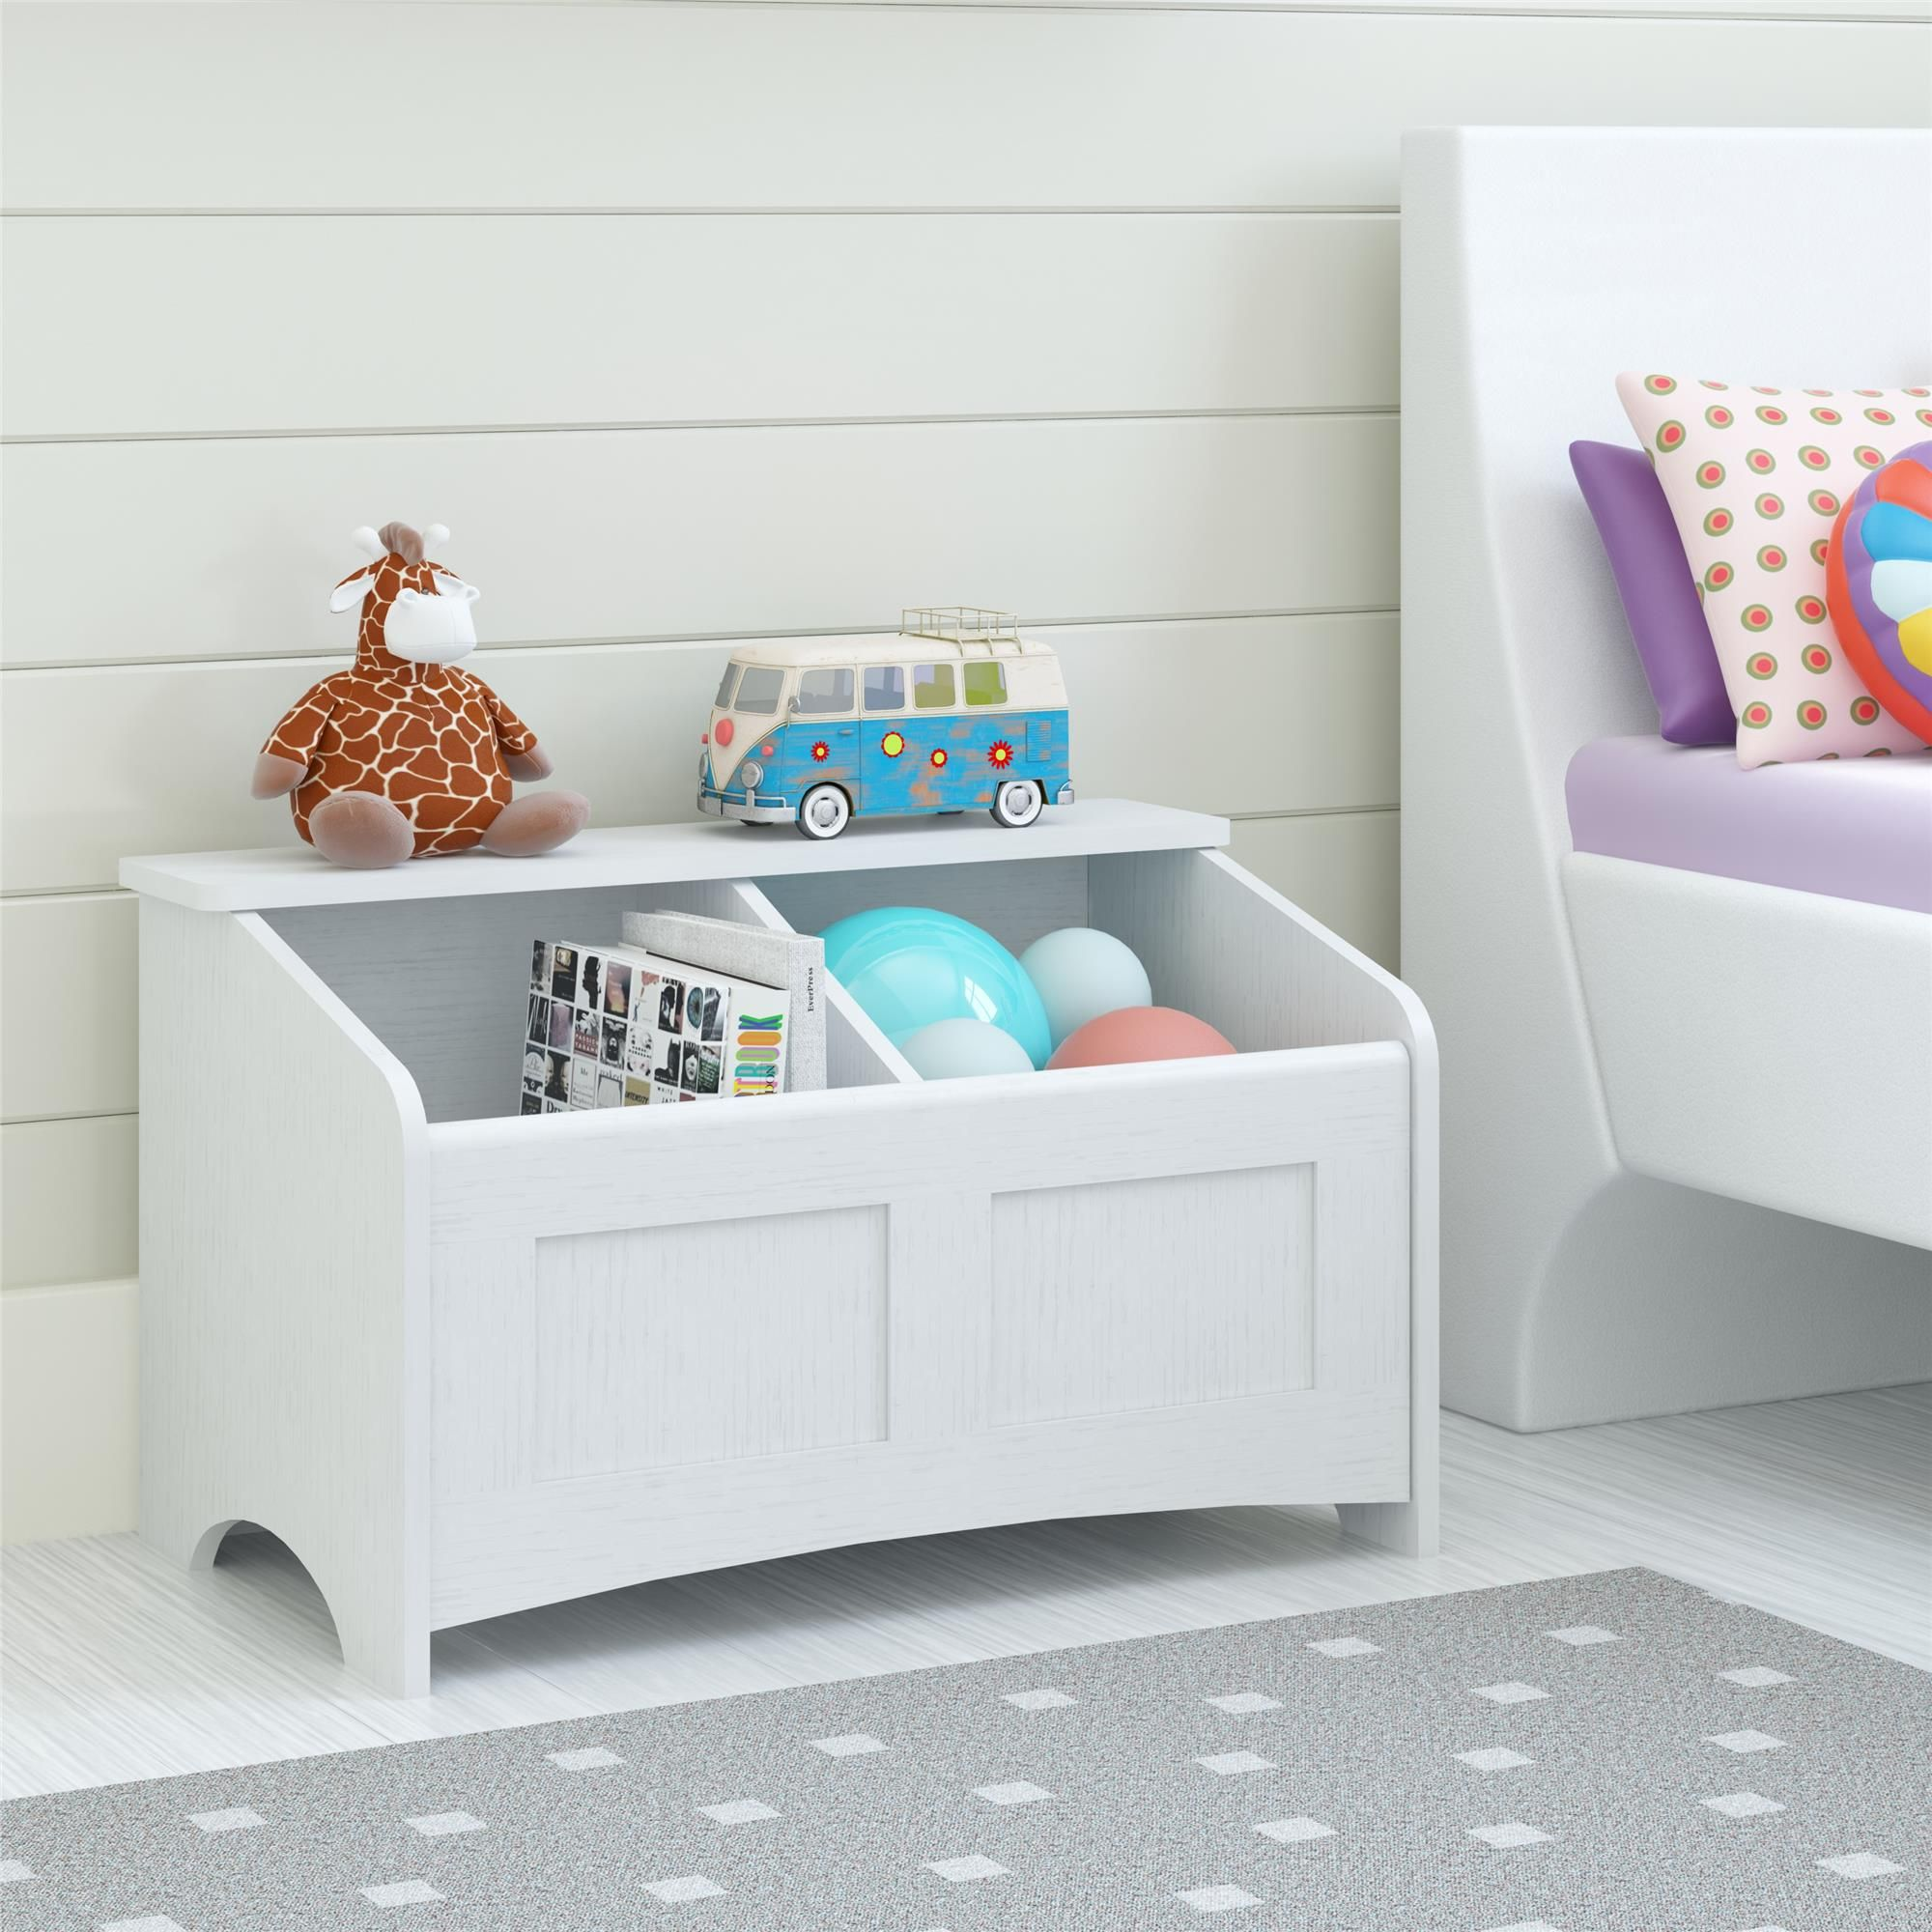 Donu0027t Fight With All The Clutter Of A Childu0027s Room, Simply Store It All In  The Cosco Cassidy Toy Chest. This Toy Chest Is Great For Storing Stuffed  Animals, ...